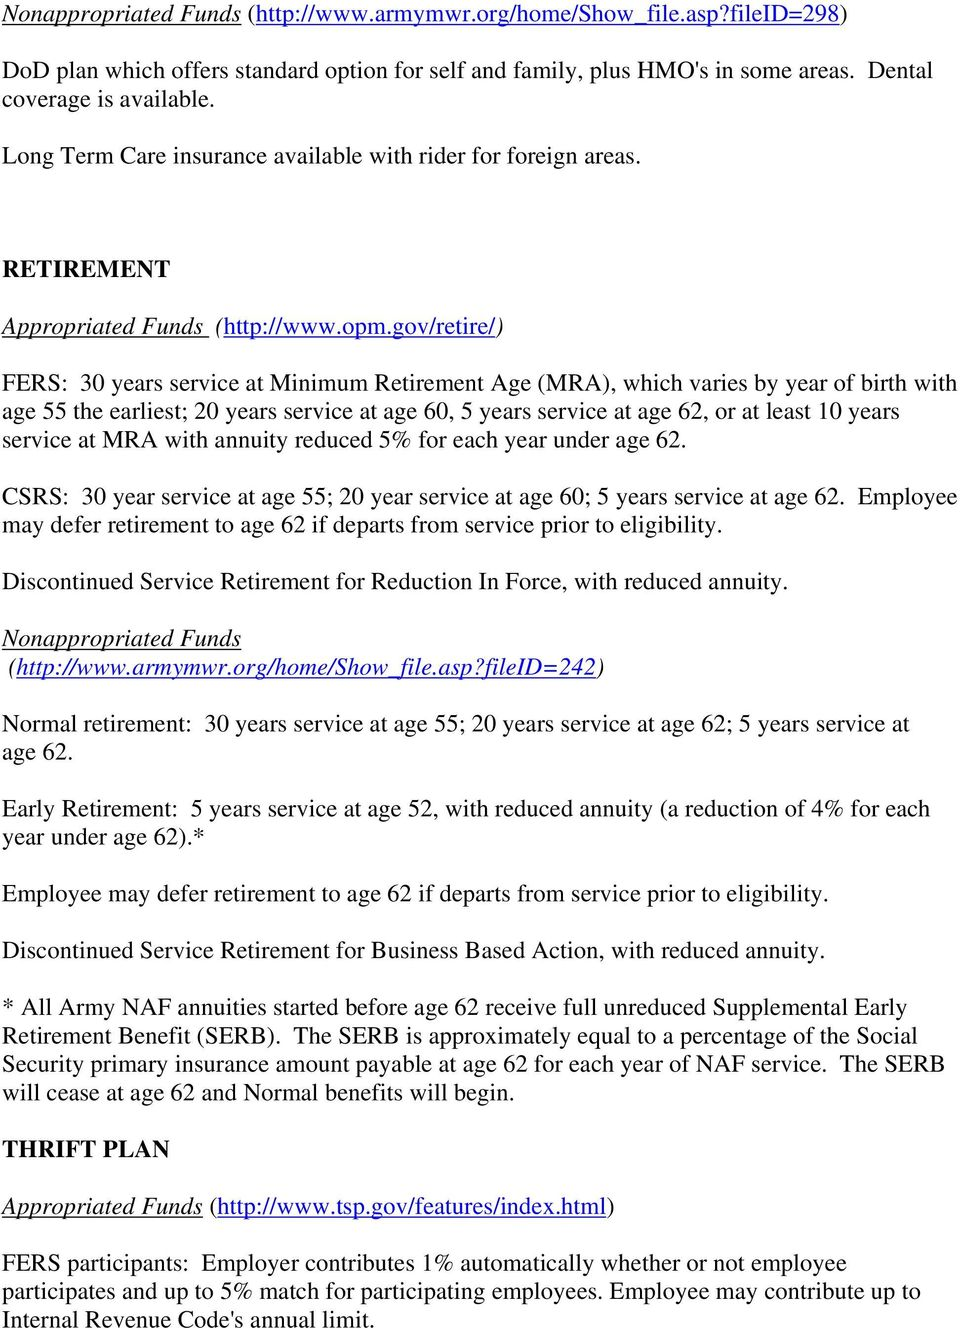 gov/retire/) FERS: 30 years service at Minimum Retirement Age (MRA), which varies by year of birth with age 55 the earliest; 20 years service at age 60, 5 years service at age 62, or at least 10